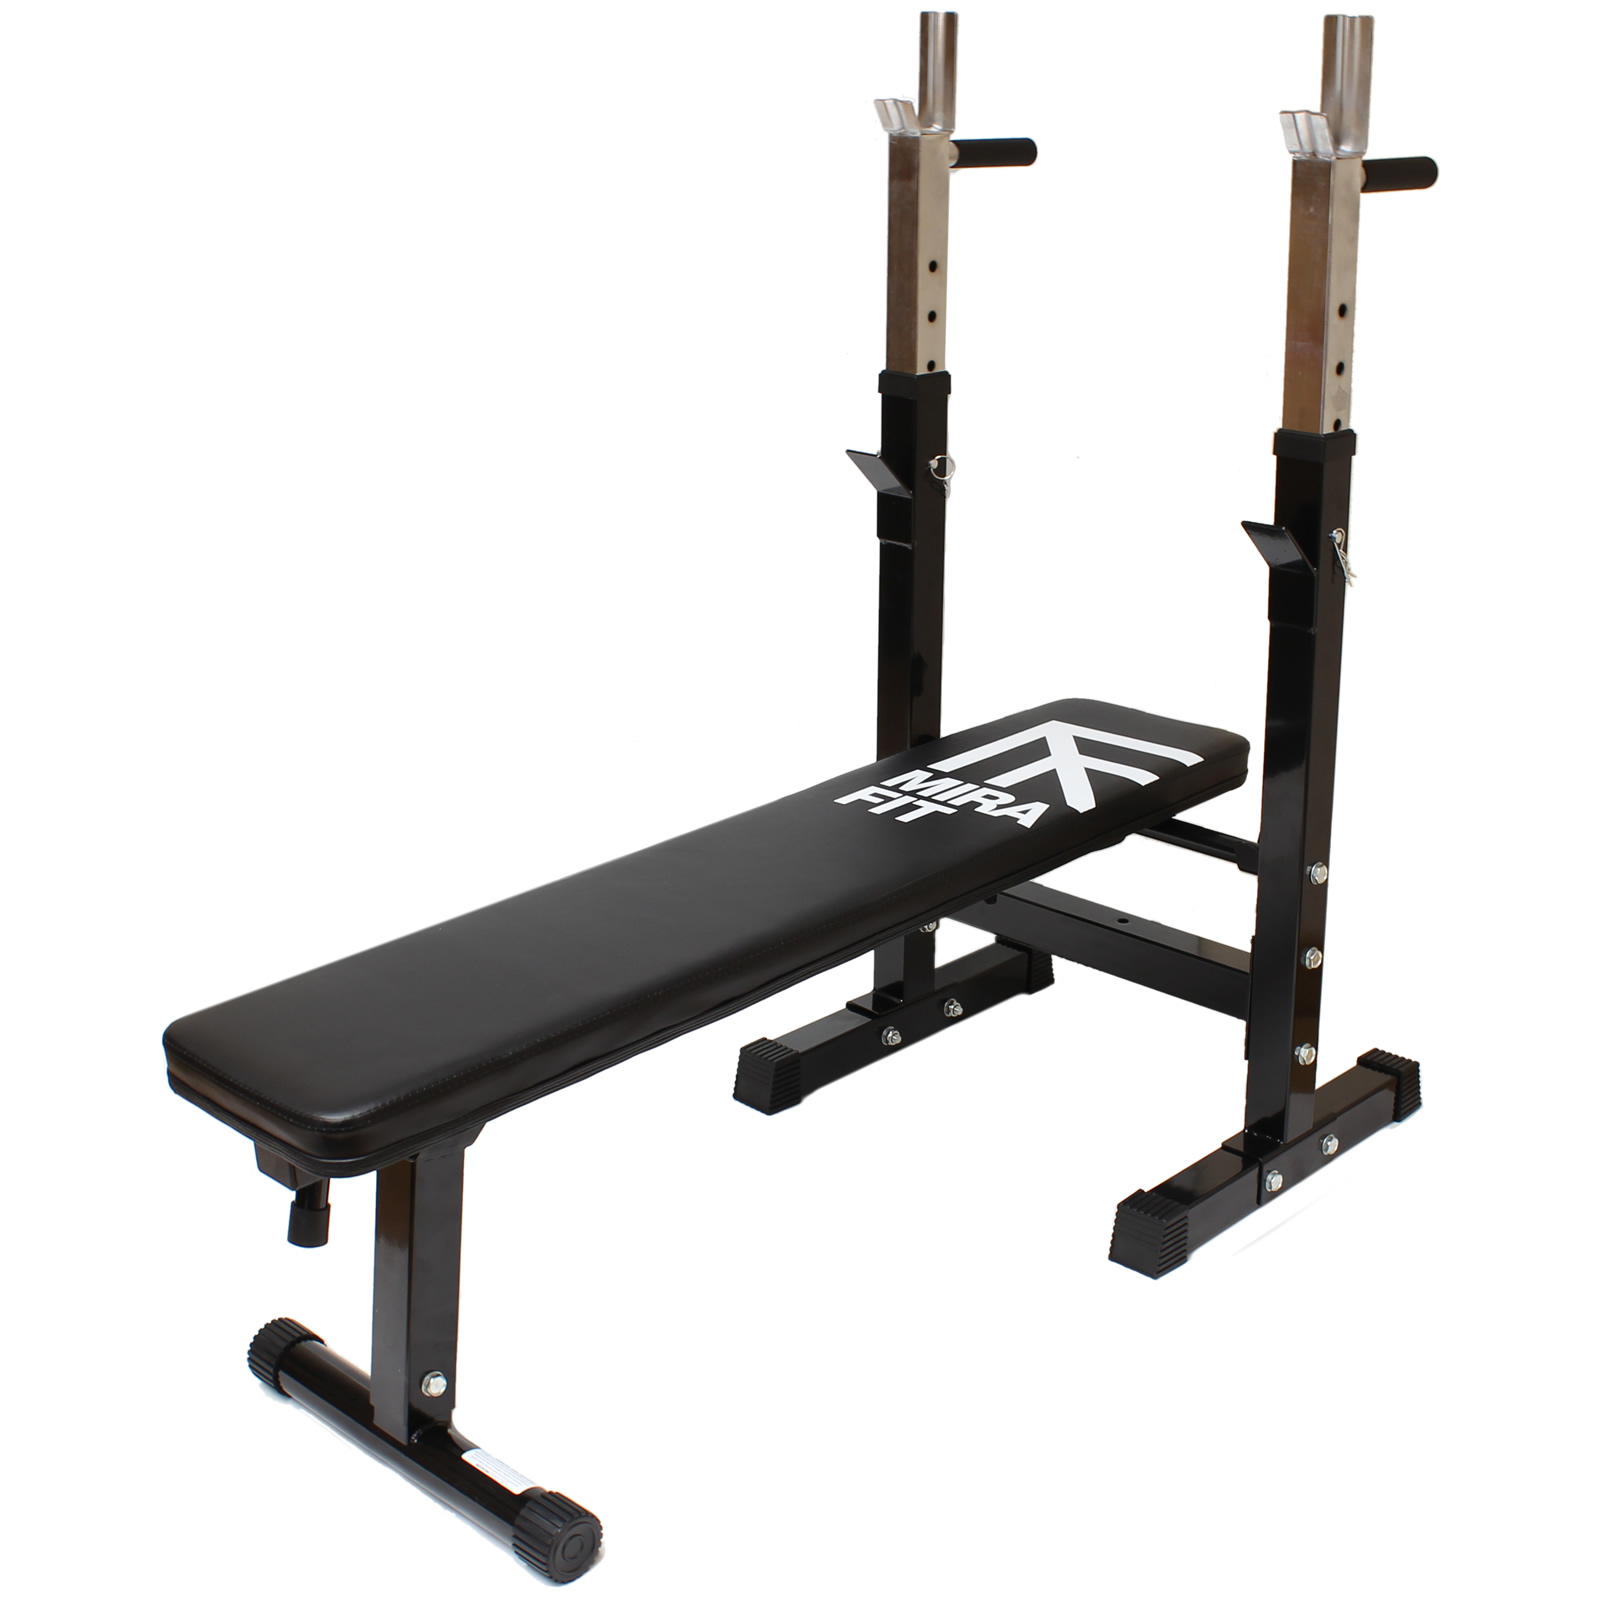 Mirafit adjustable folding flat weight bench dip station Bench weights